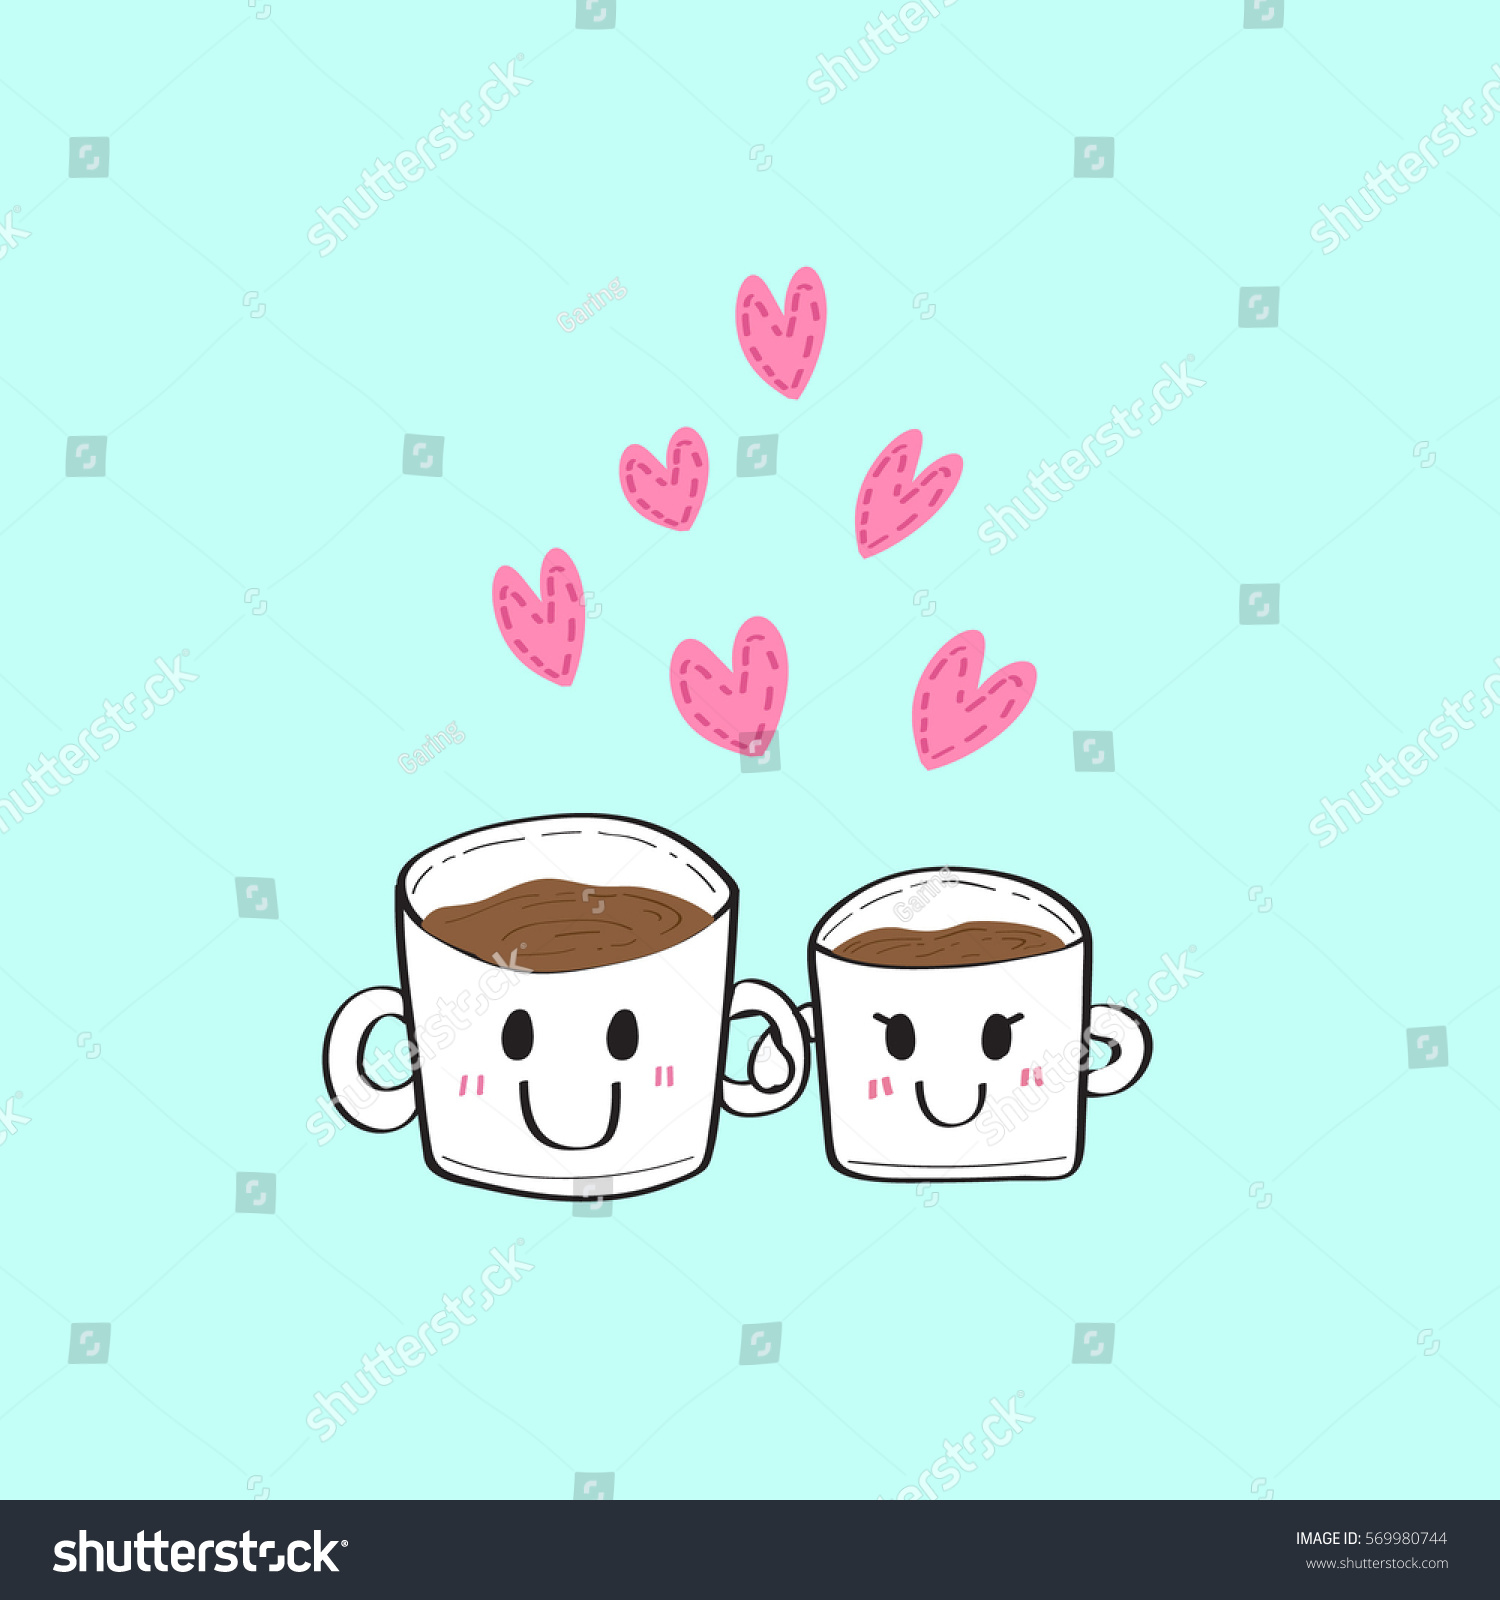 Couple Coffee Cup Hearth Illustration Valentines Dayprintable Stock ...